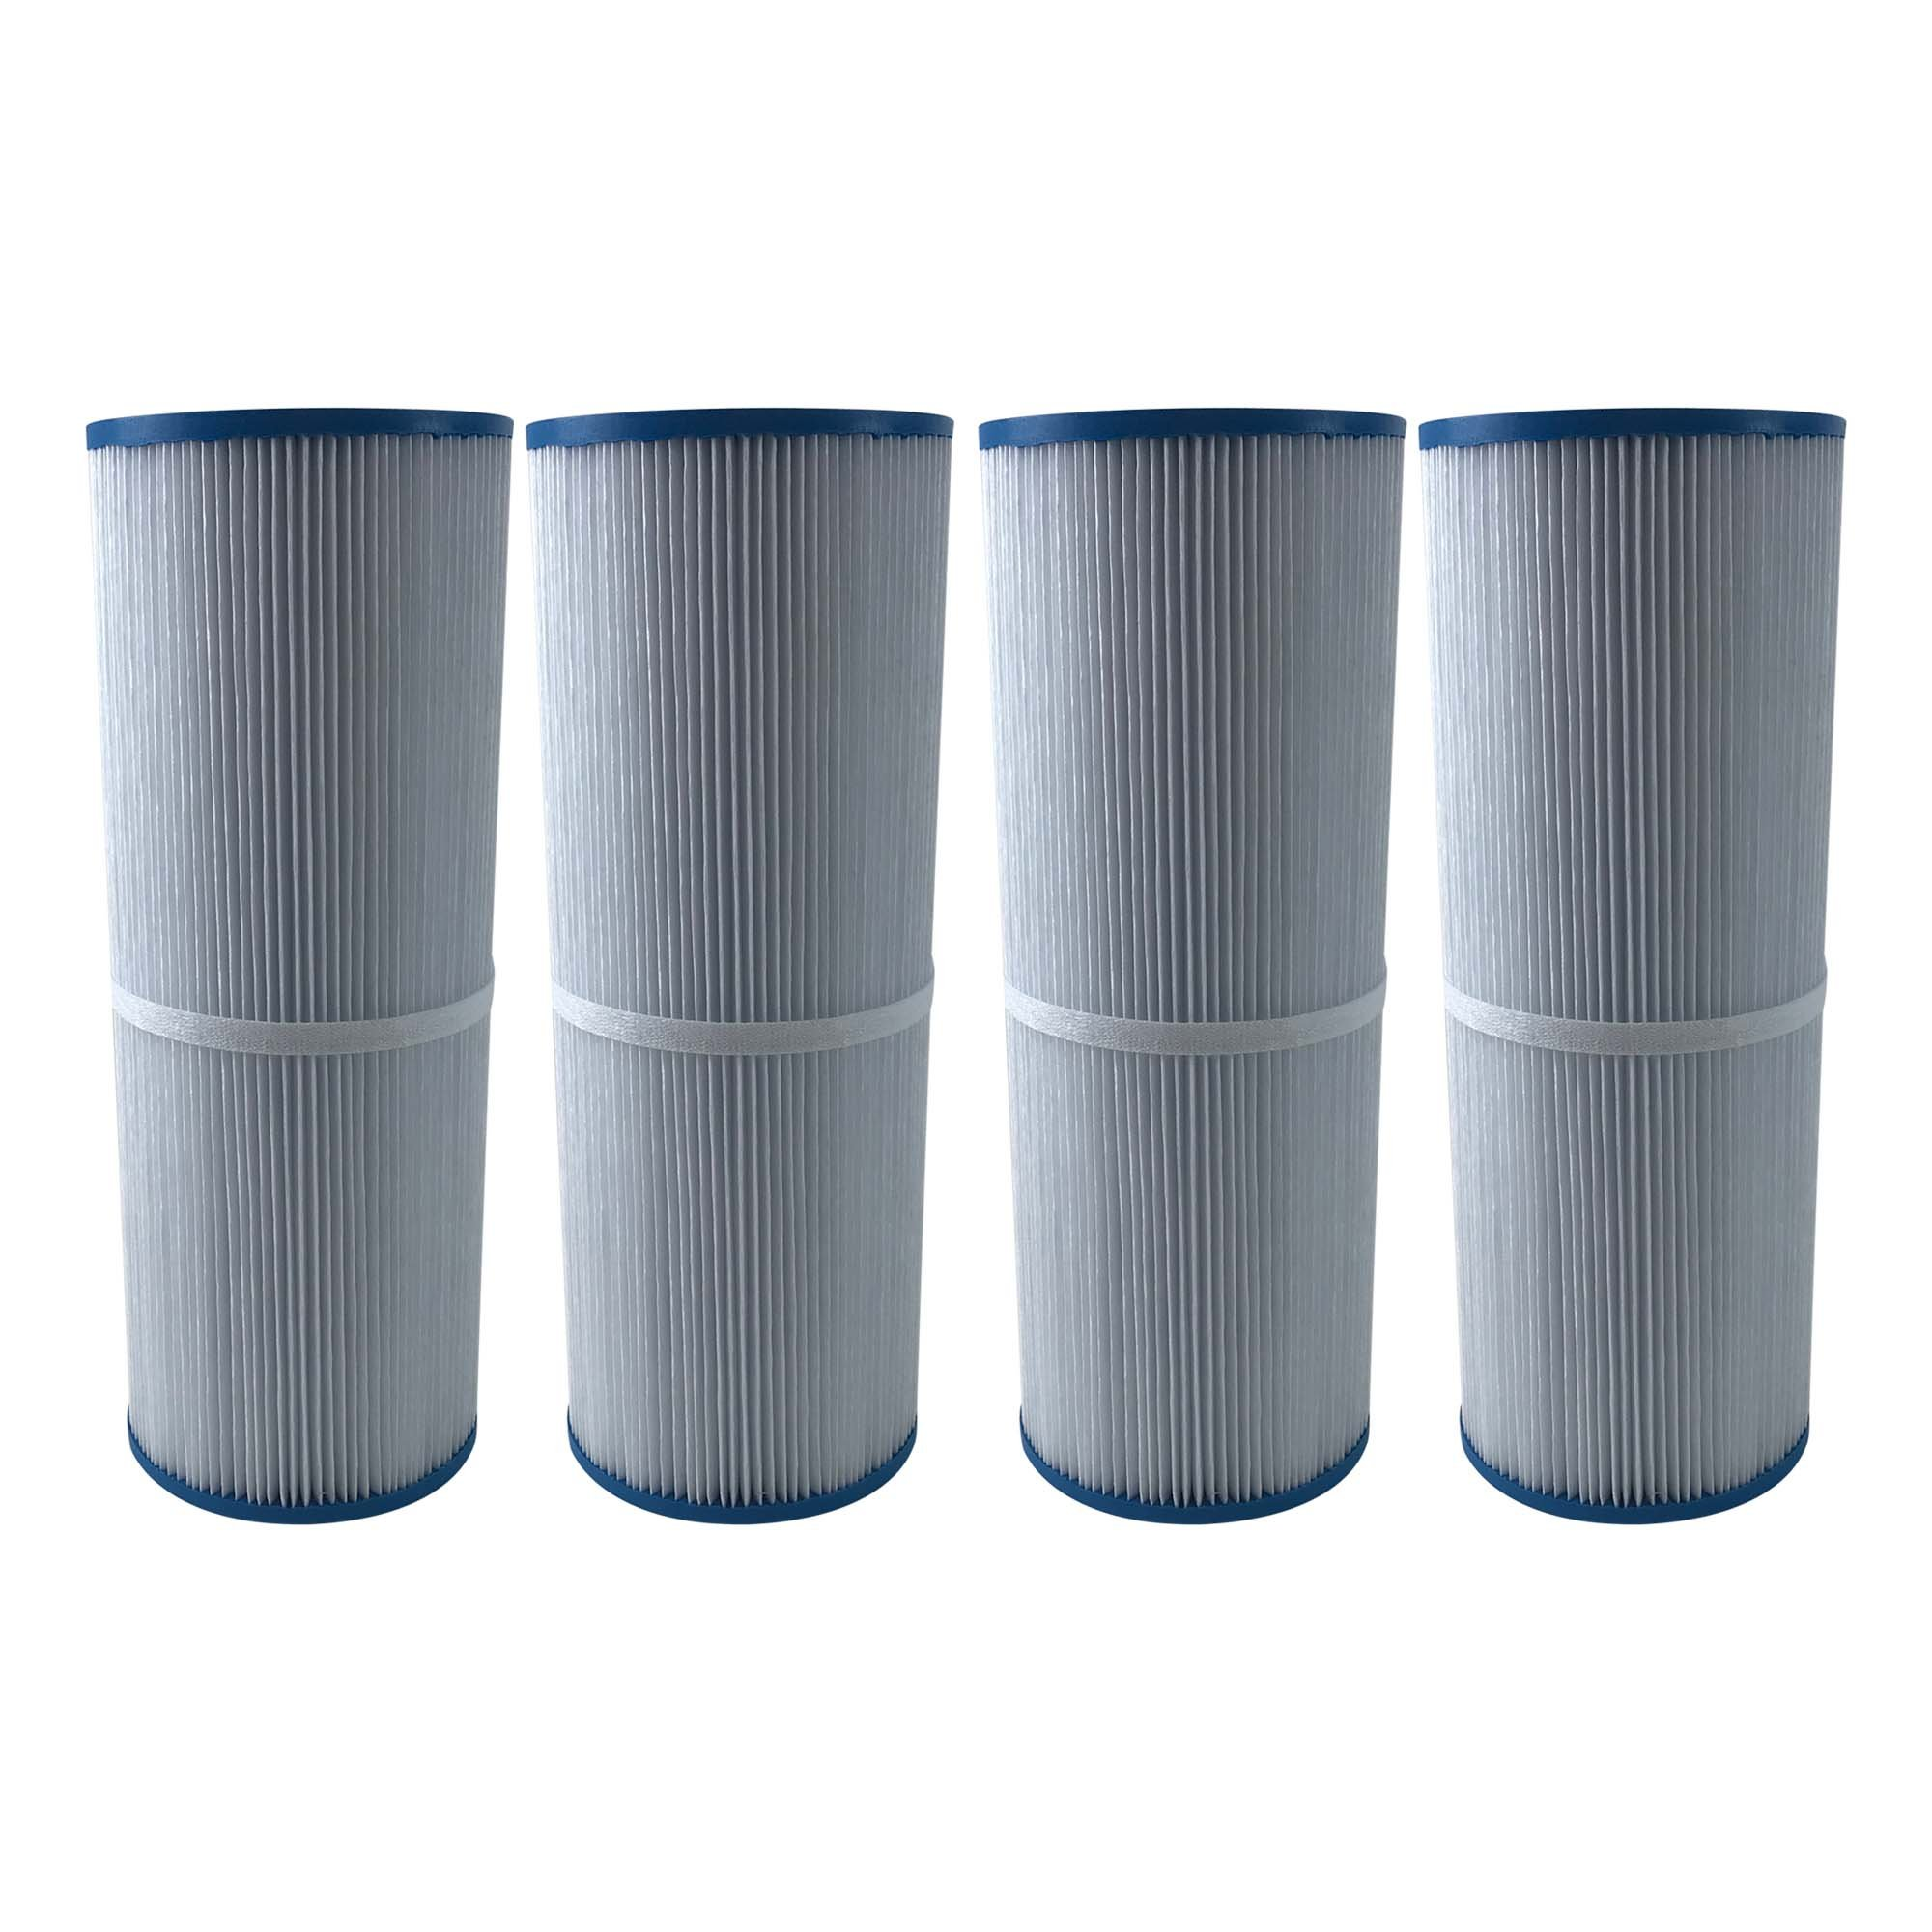 Think Crucial 4 Replacement for Unicel Pool Filter Fits C-4326, Pleatco PRB25-IN, Filbur FC-2375 & Rainbow Dynamic 25, Fits Multiple Pools & Spas